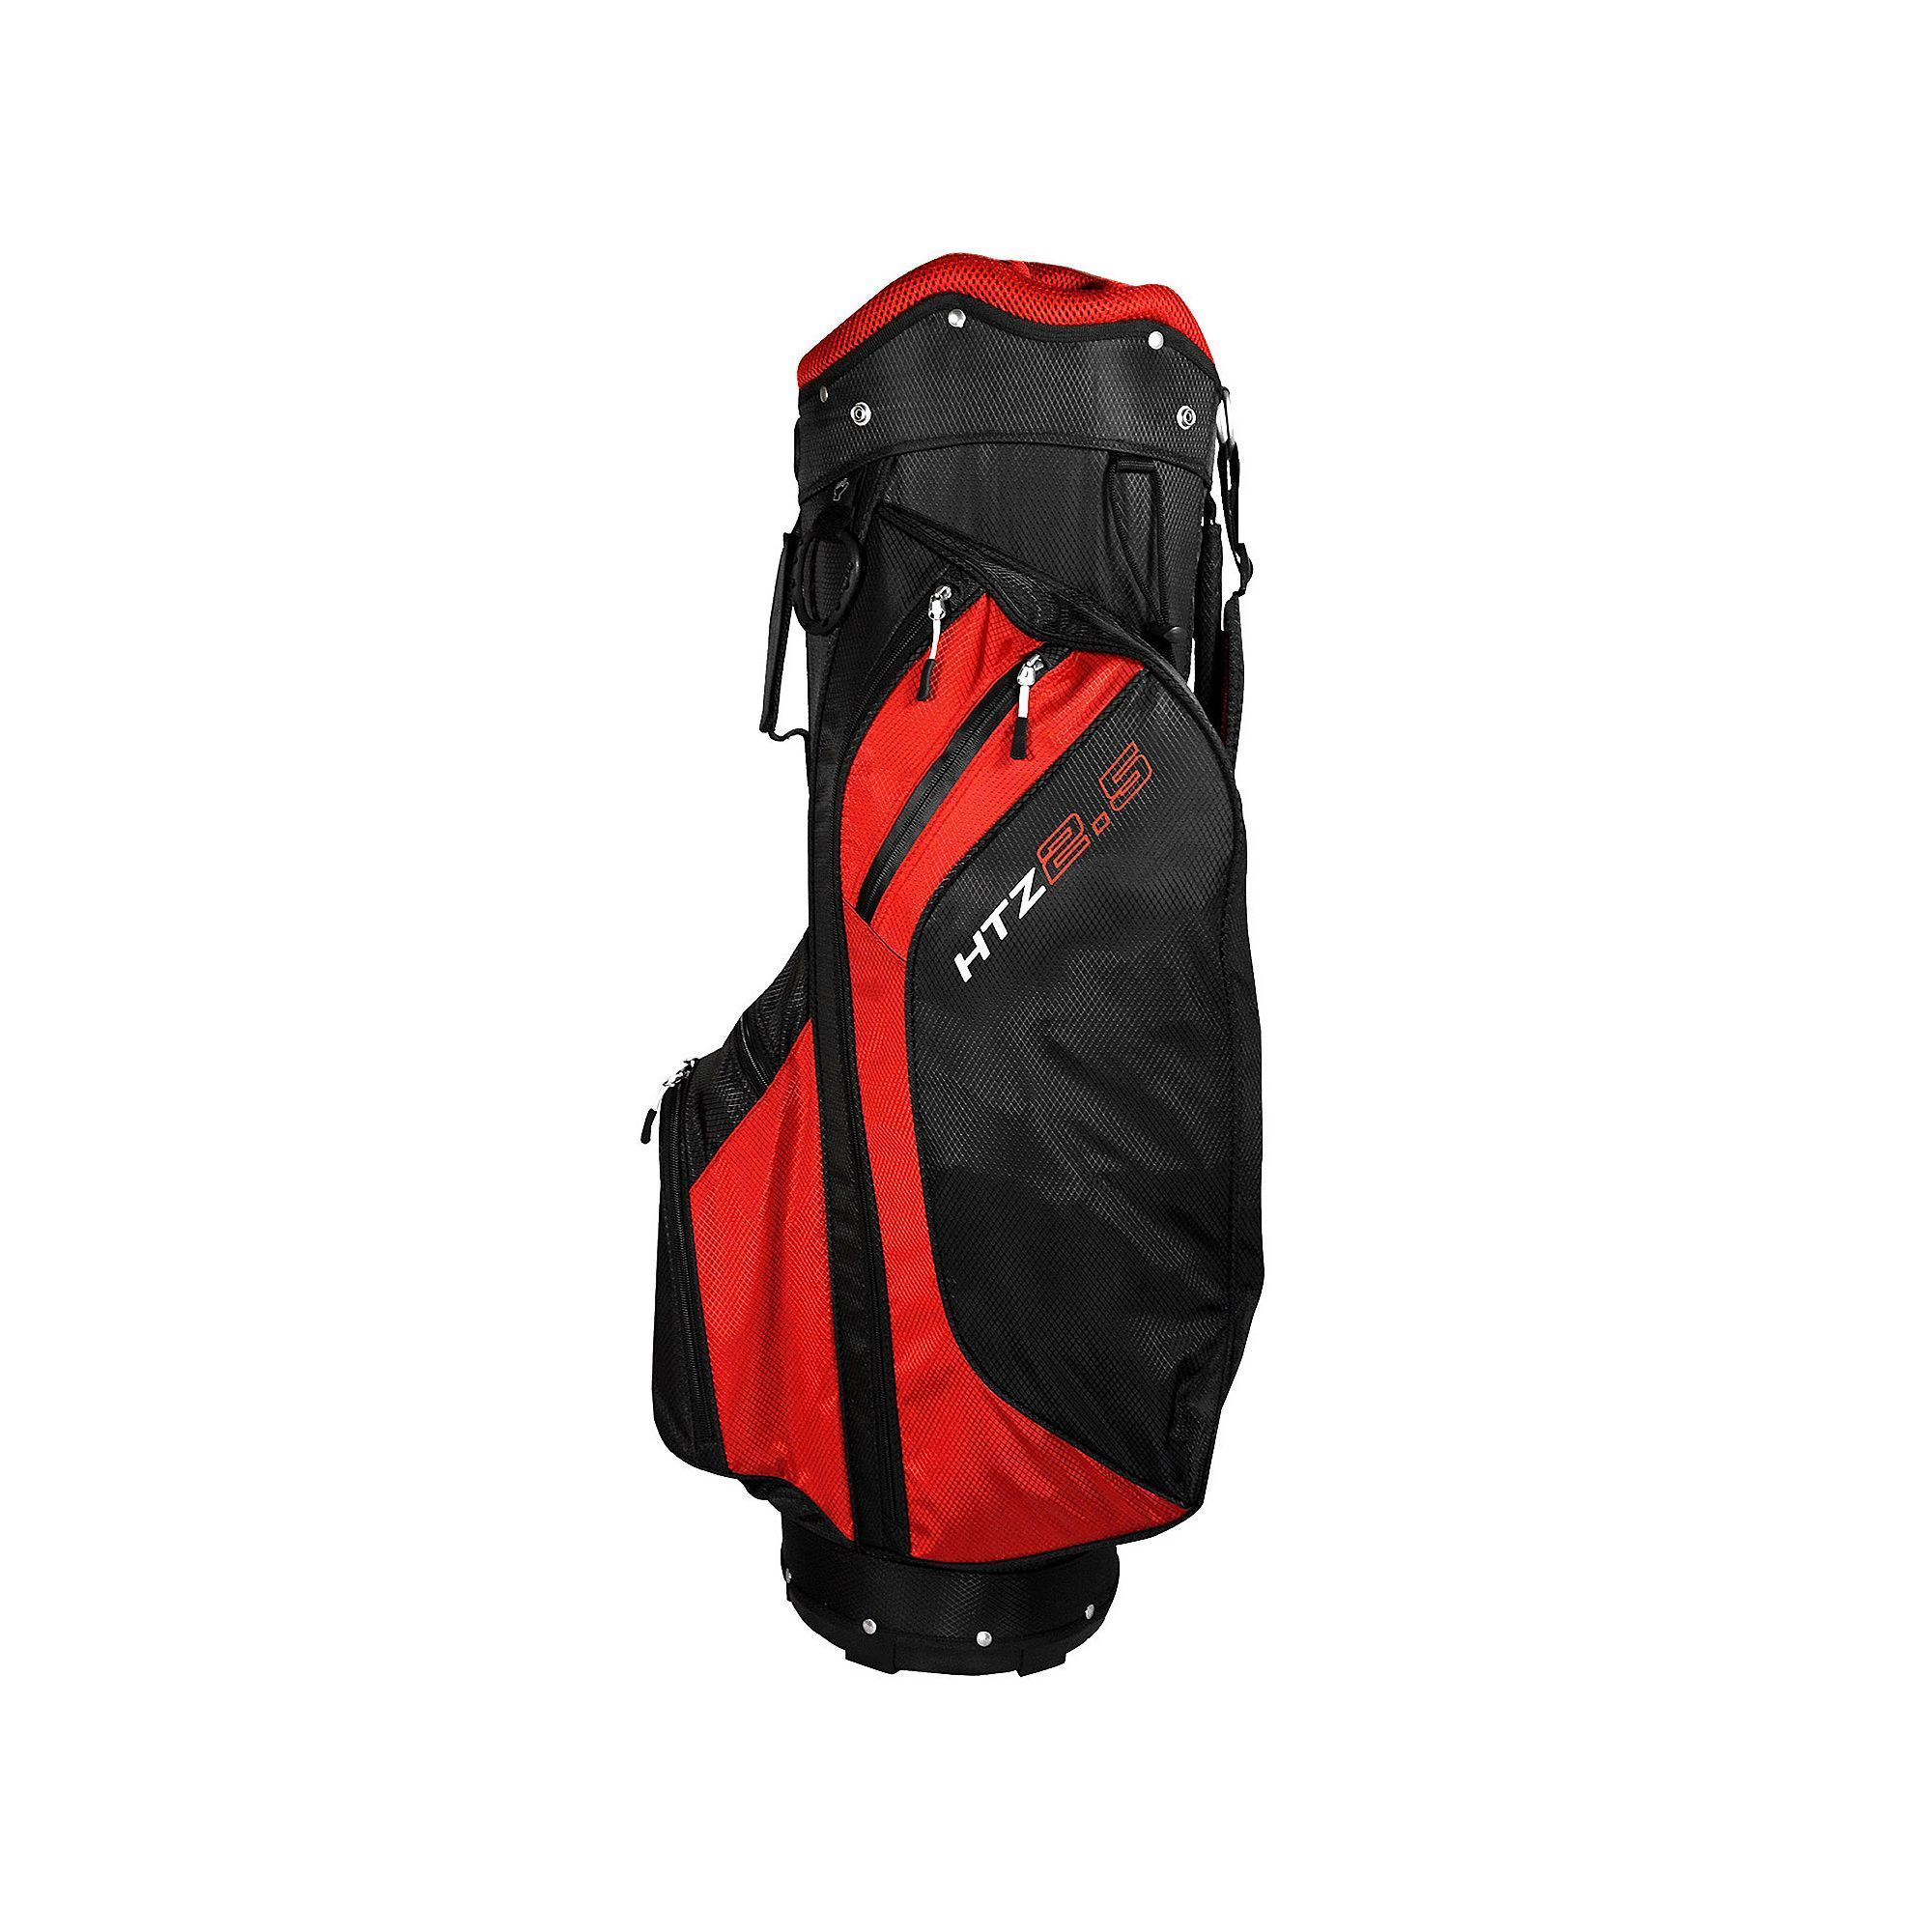 Hot Z 2 5 Golf Cart Bag Red